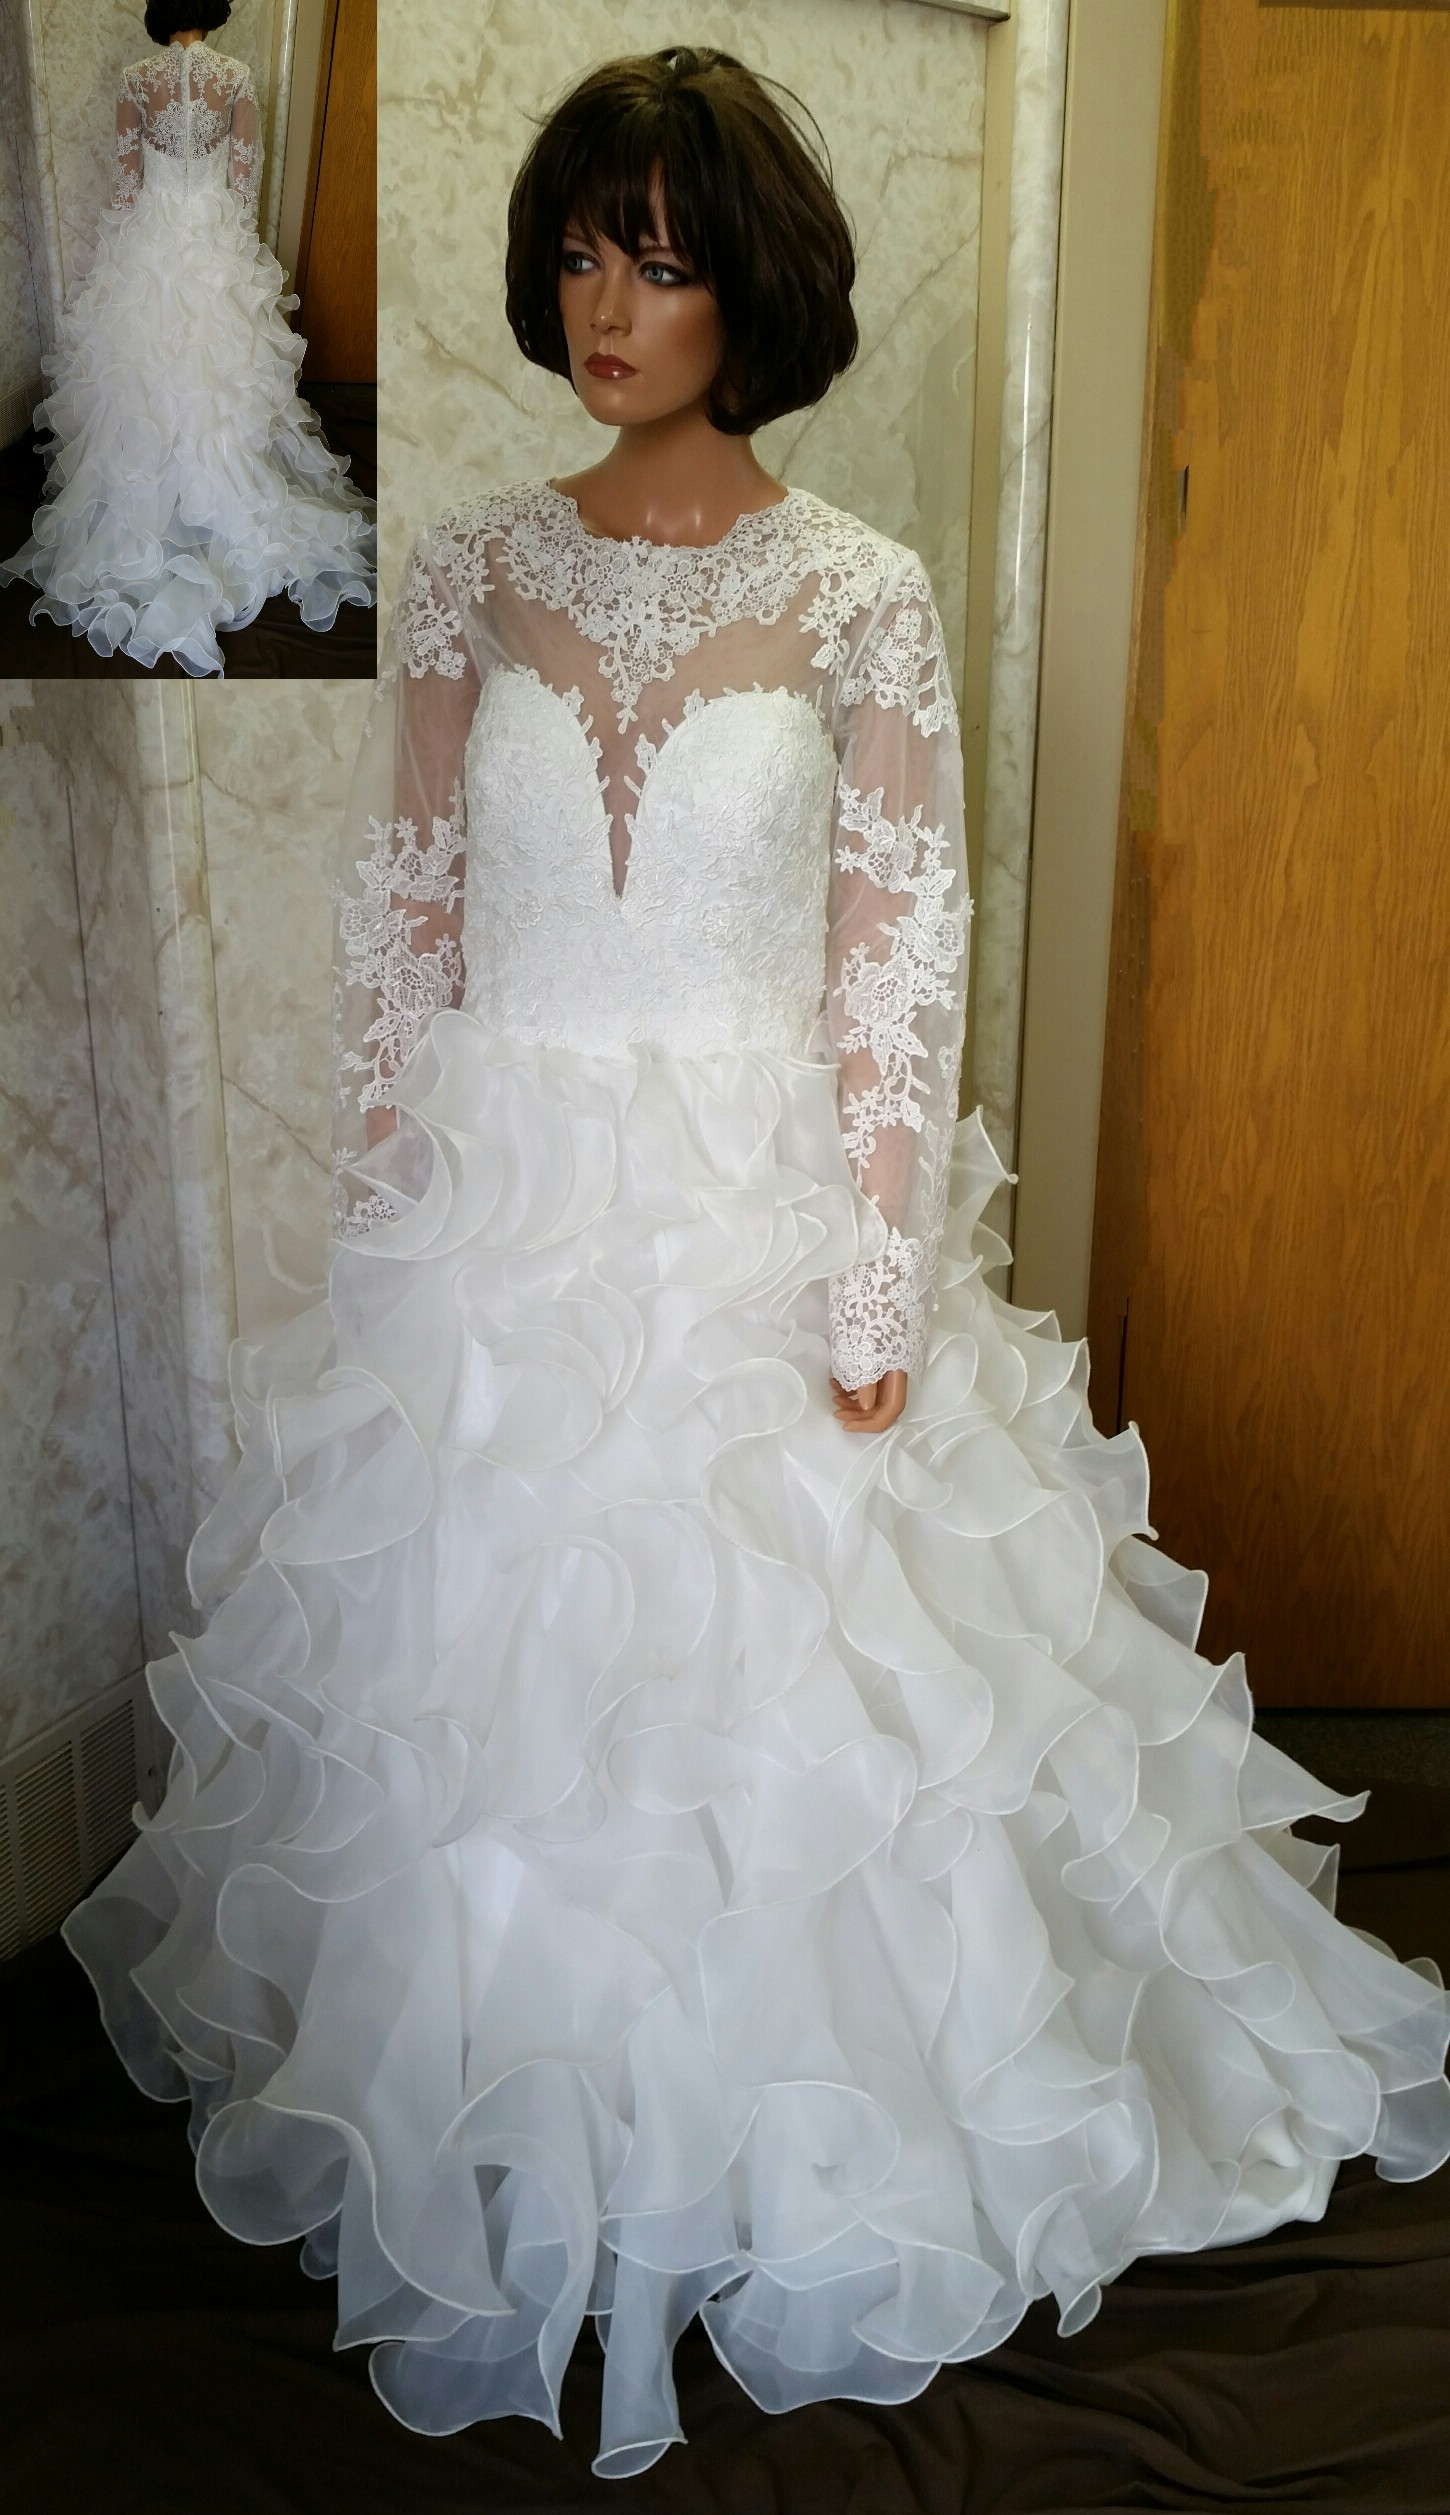 Ruffle wedding dresses.